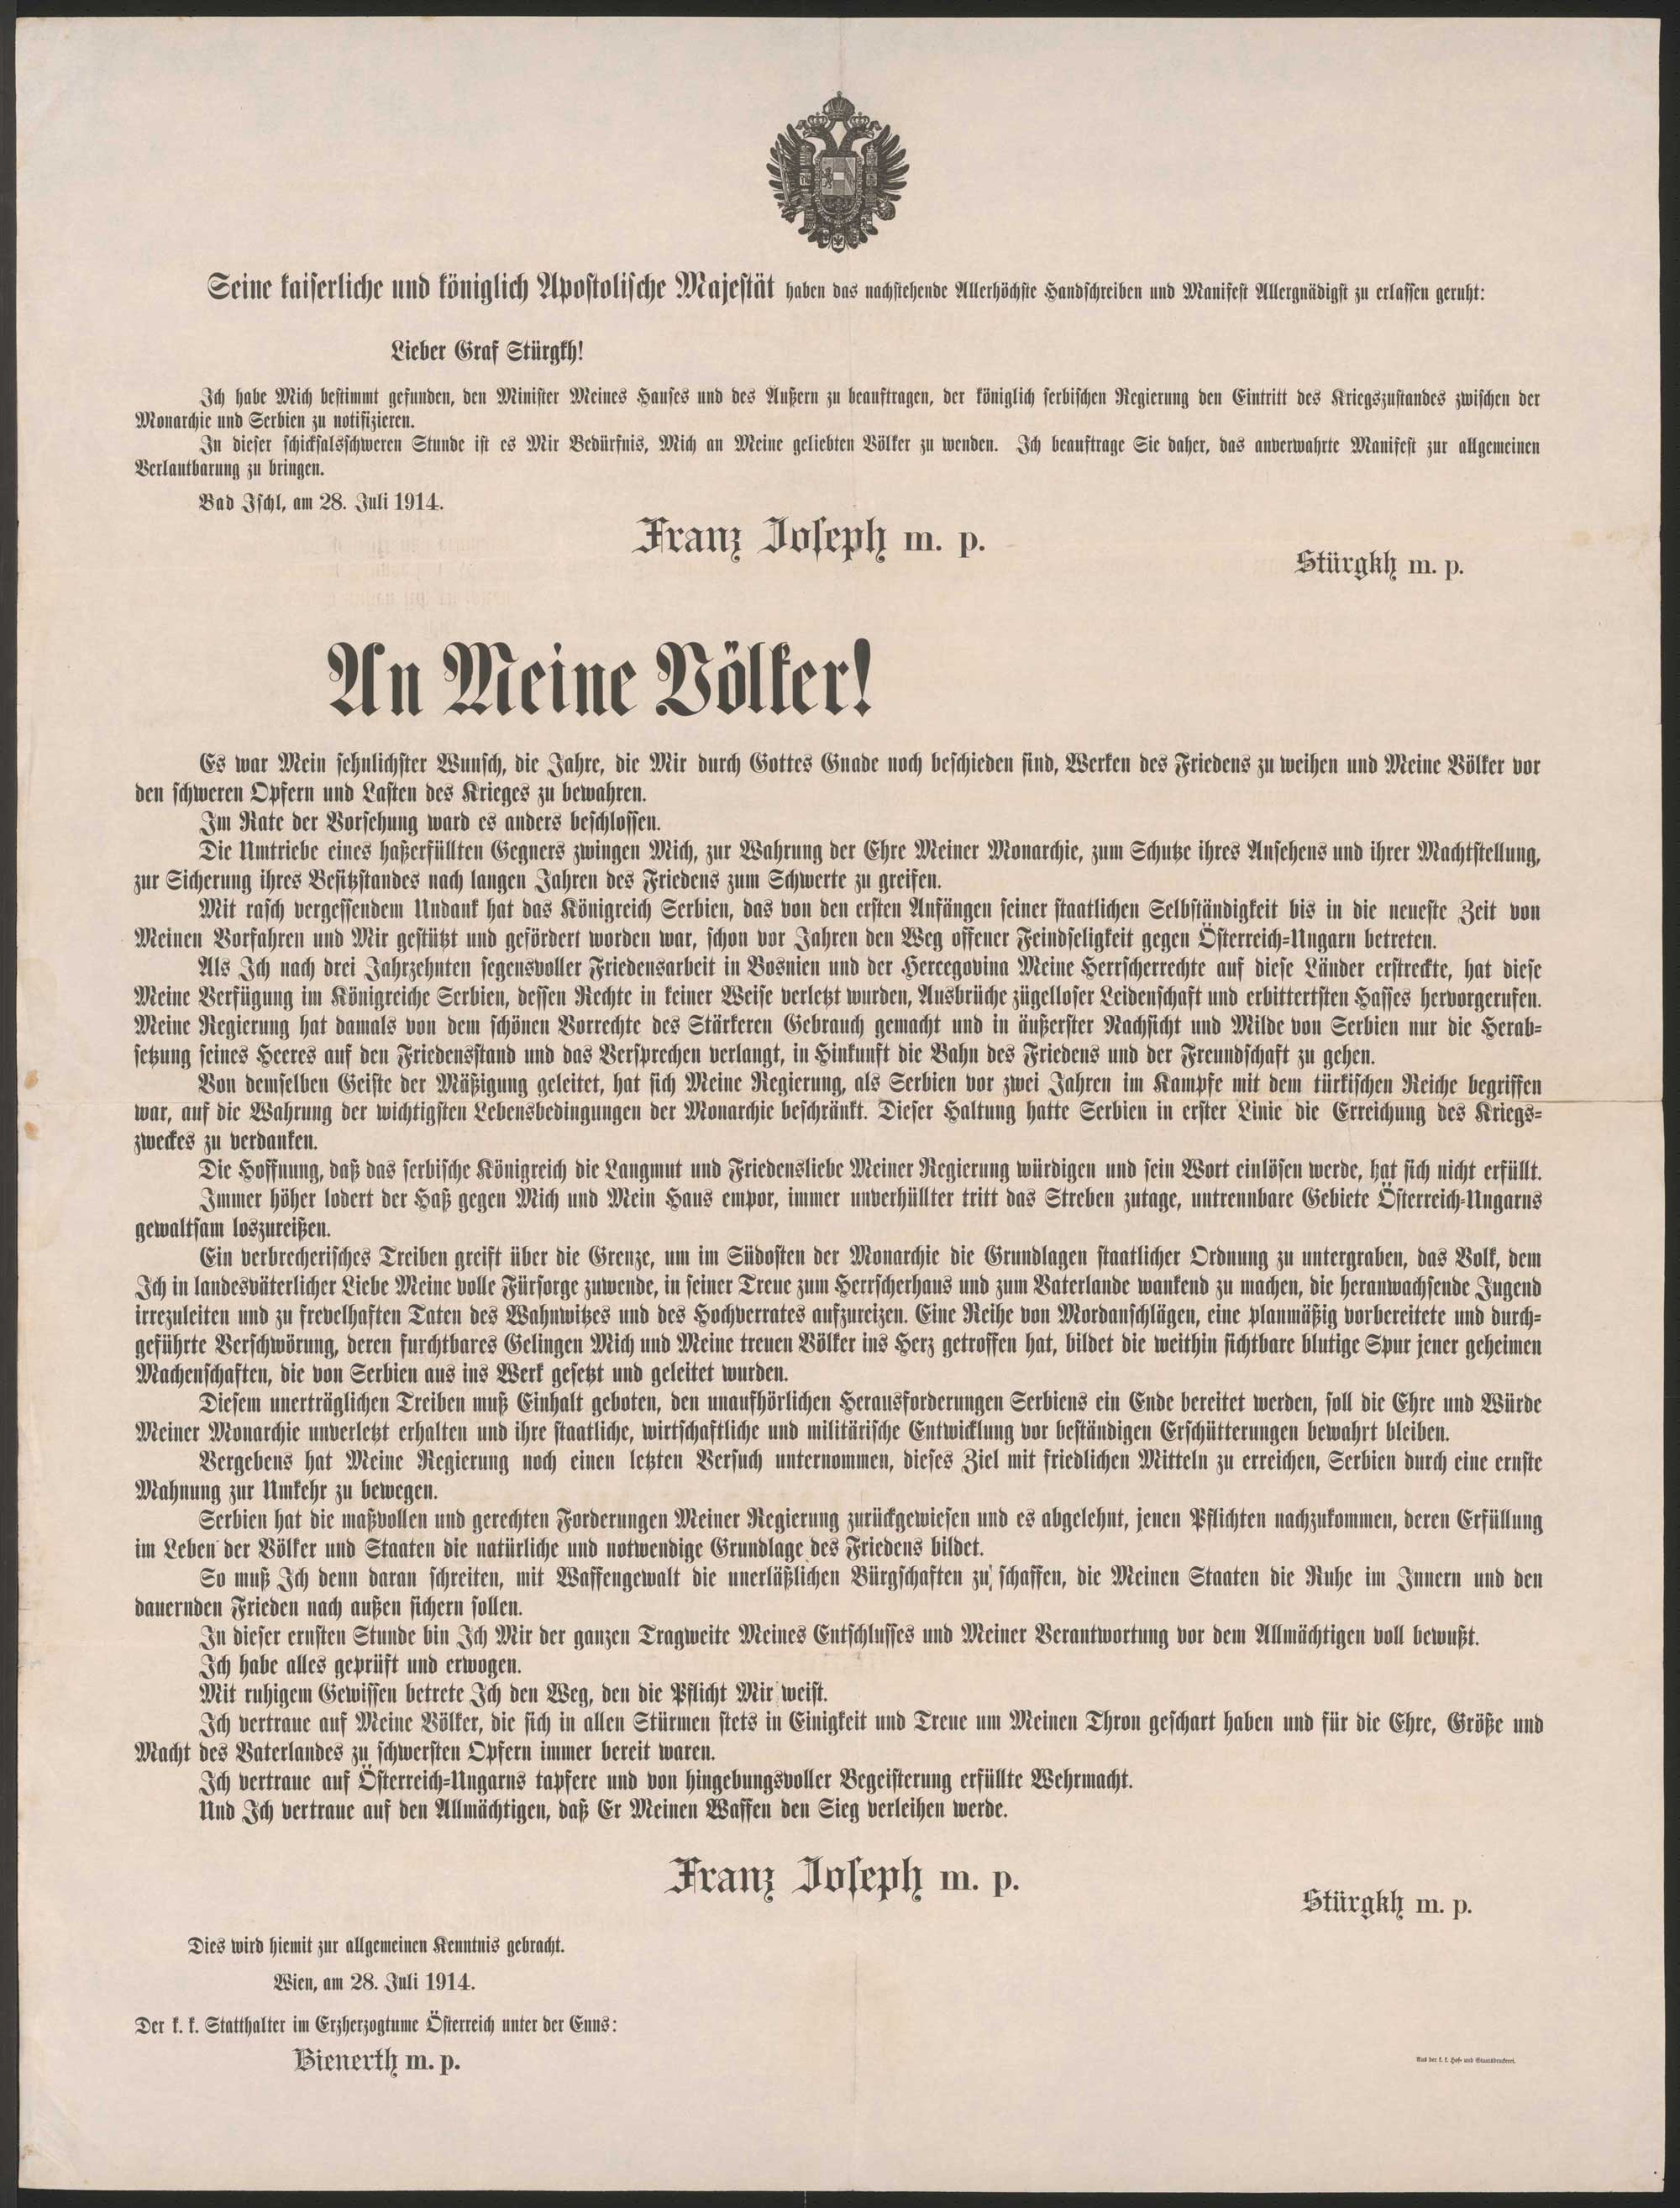 Emperor Franz Joseph I seeks understanding among 'His' population for the declaration of war. This major document was not only published in newspapers, but also through posters in all languages of the Danube monarchy.